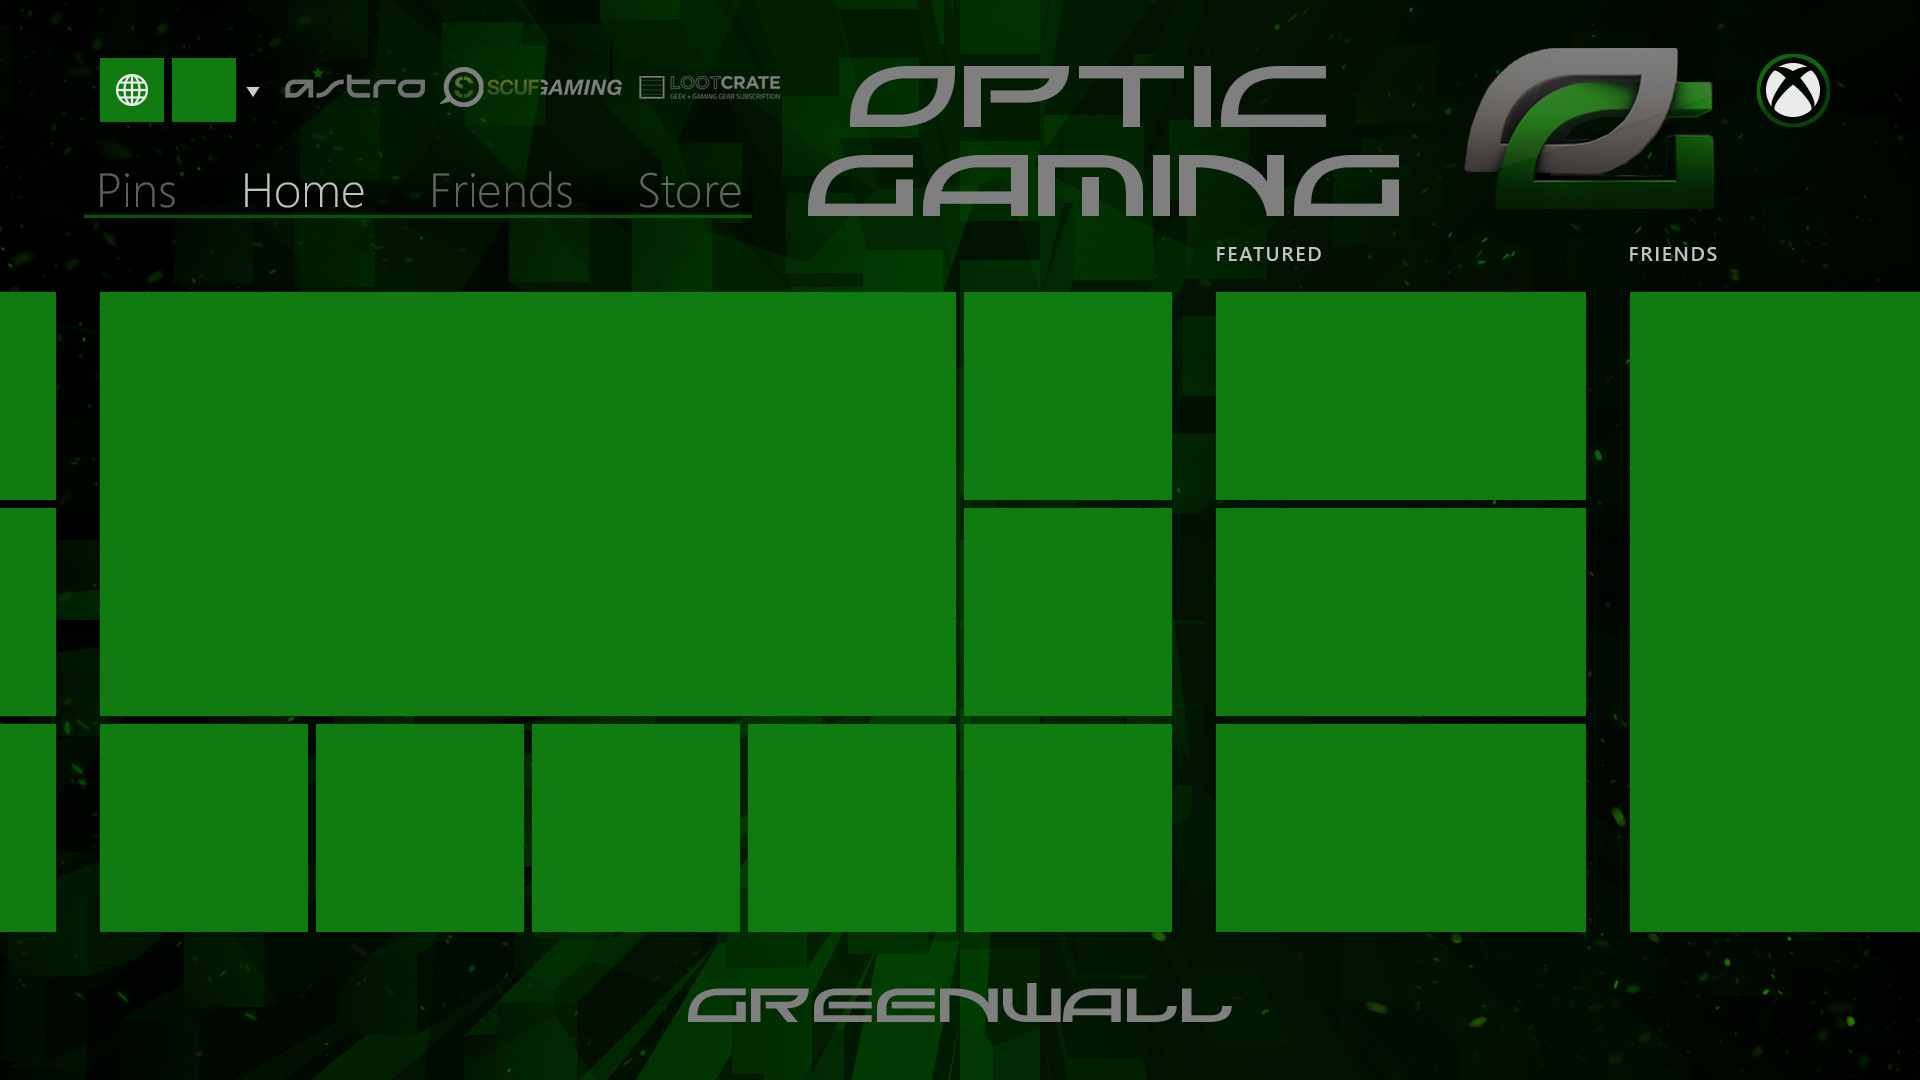 Optic Gaming Wallpapers 2015 1920x1080